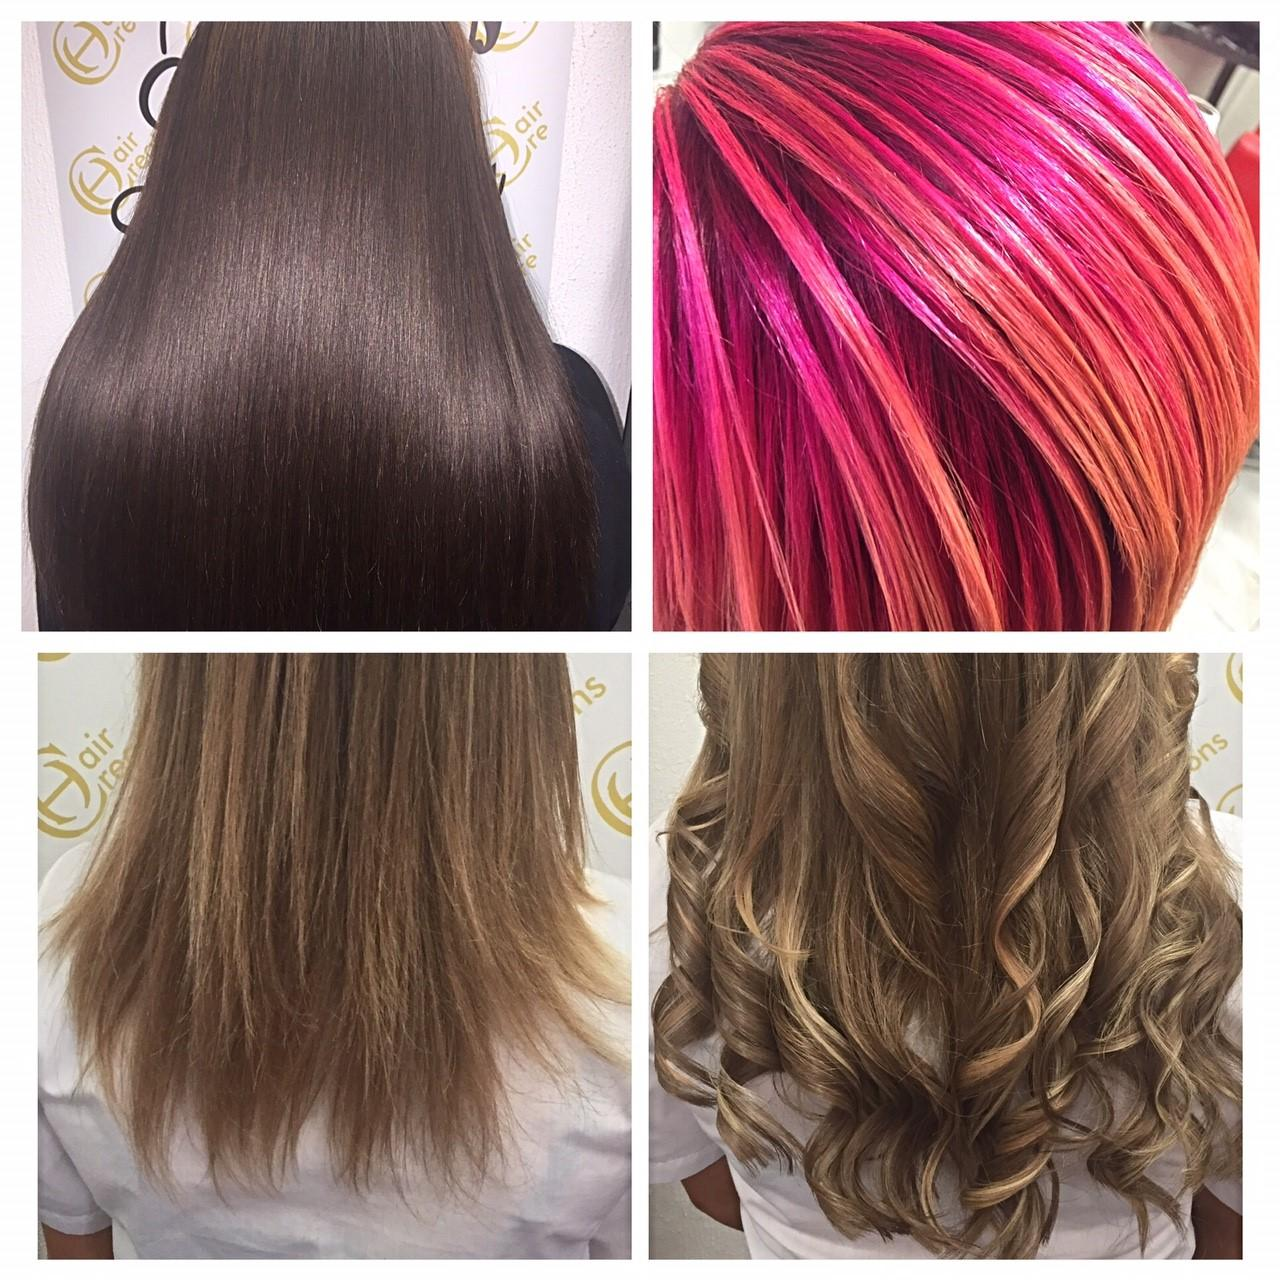 Hair Creations & Hair Extensions By Shola